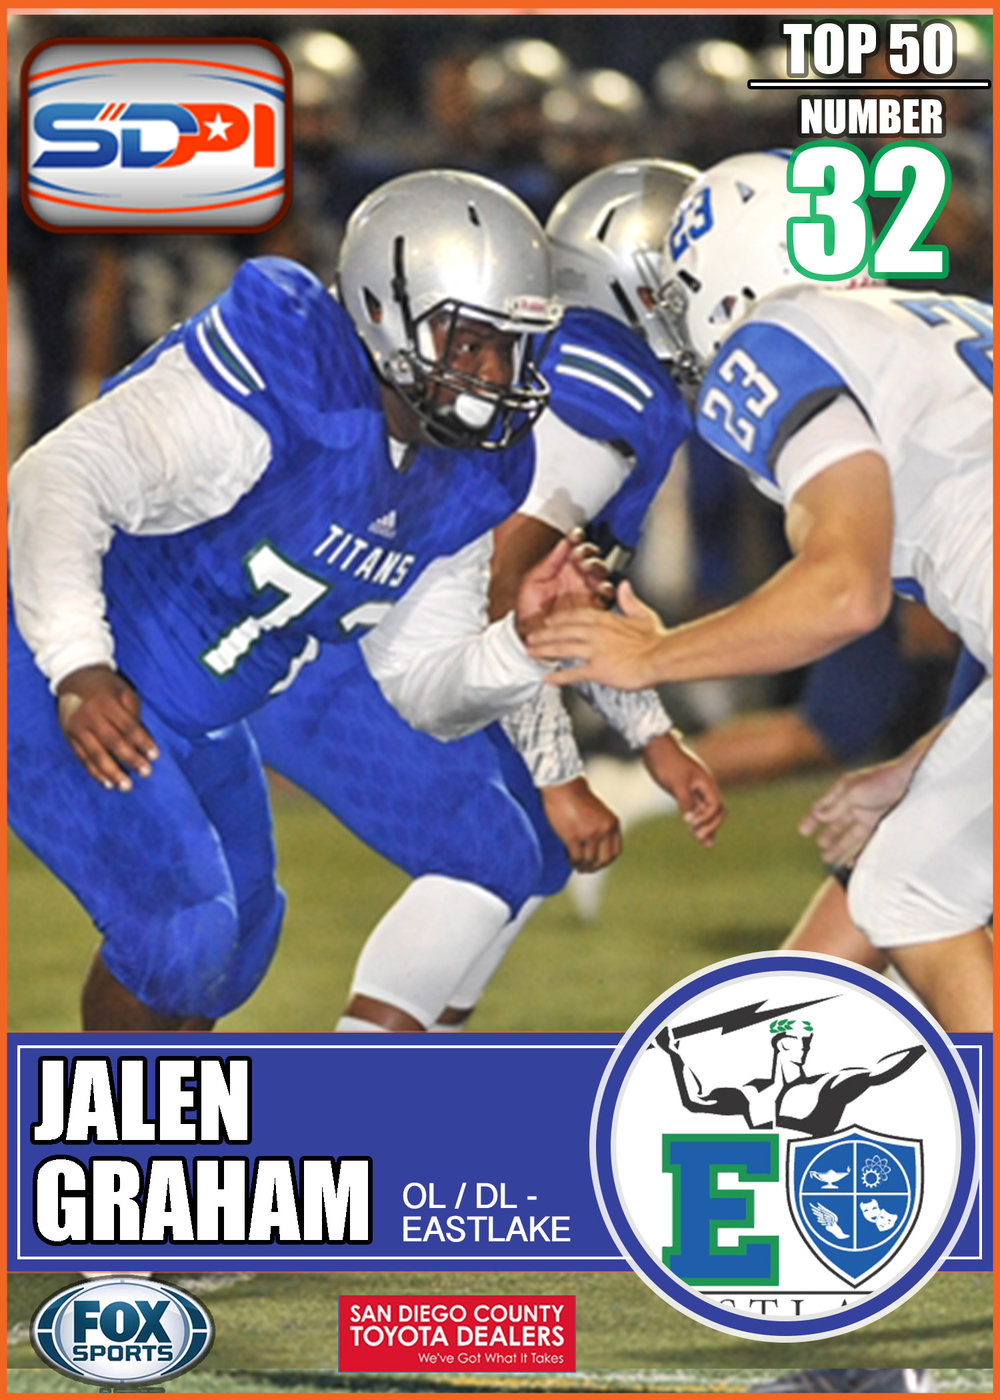 - Jalen established himself as a titanic force at the line of scrimmage last season. Hisrelentless pursuit of the ball led him to 75 tackles in 10 games. Entering his third year on varsity, Graham will lead his fellow linemen by example in order to secure more wins in 2017.